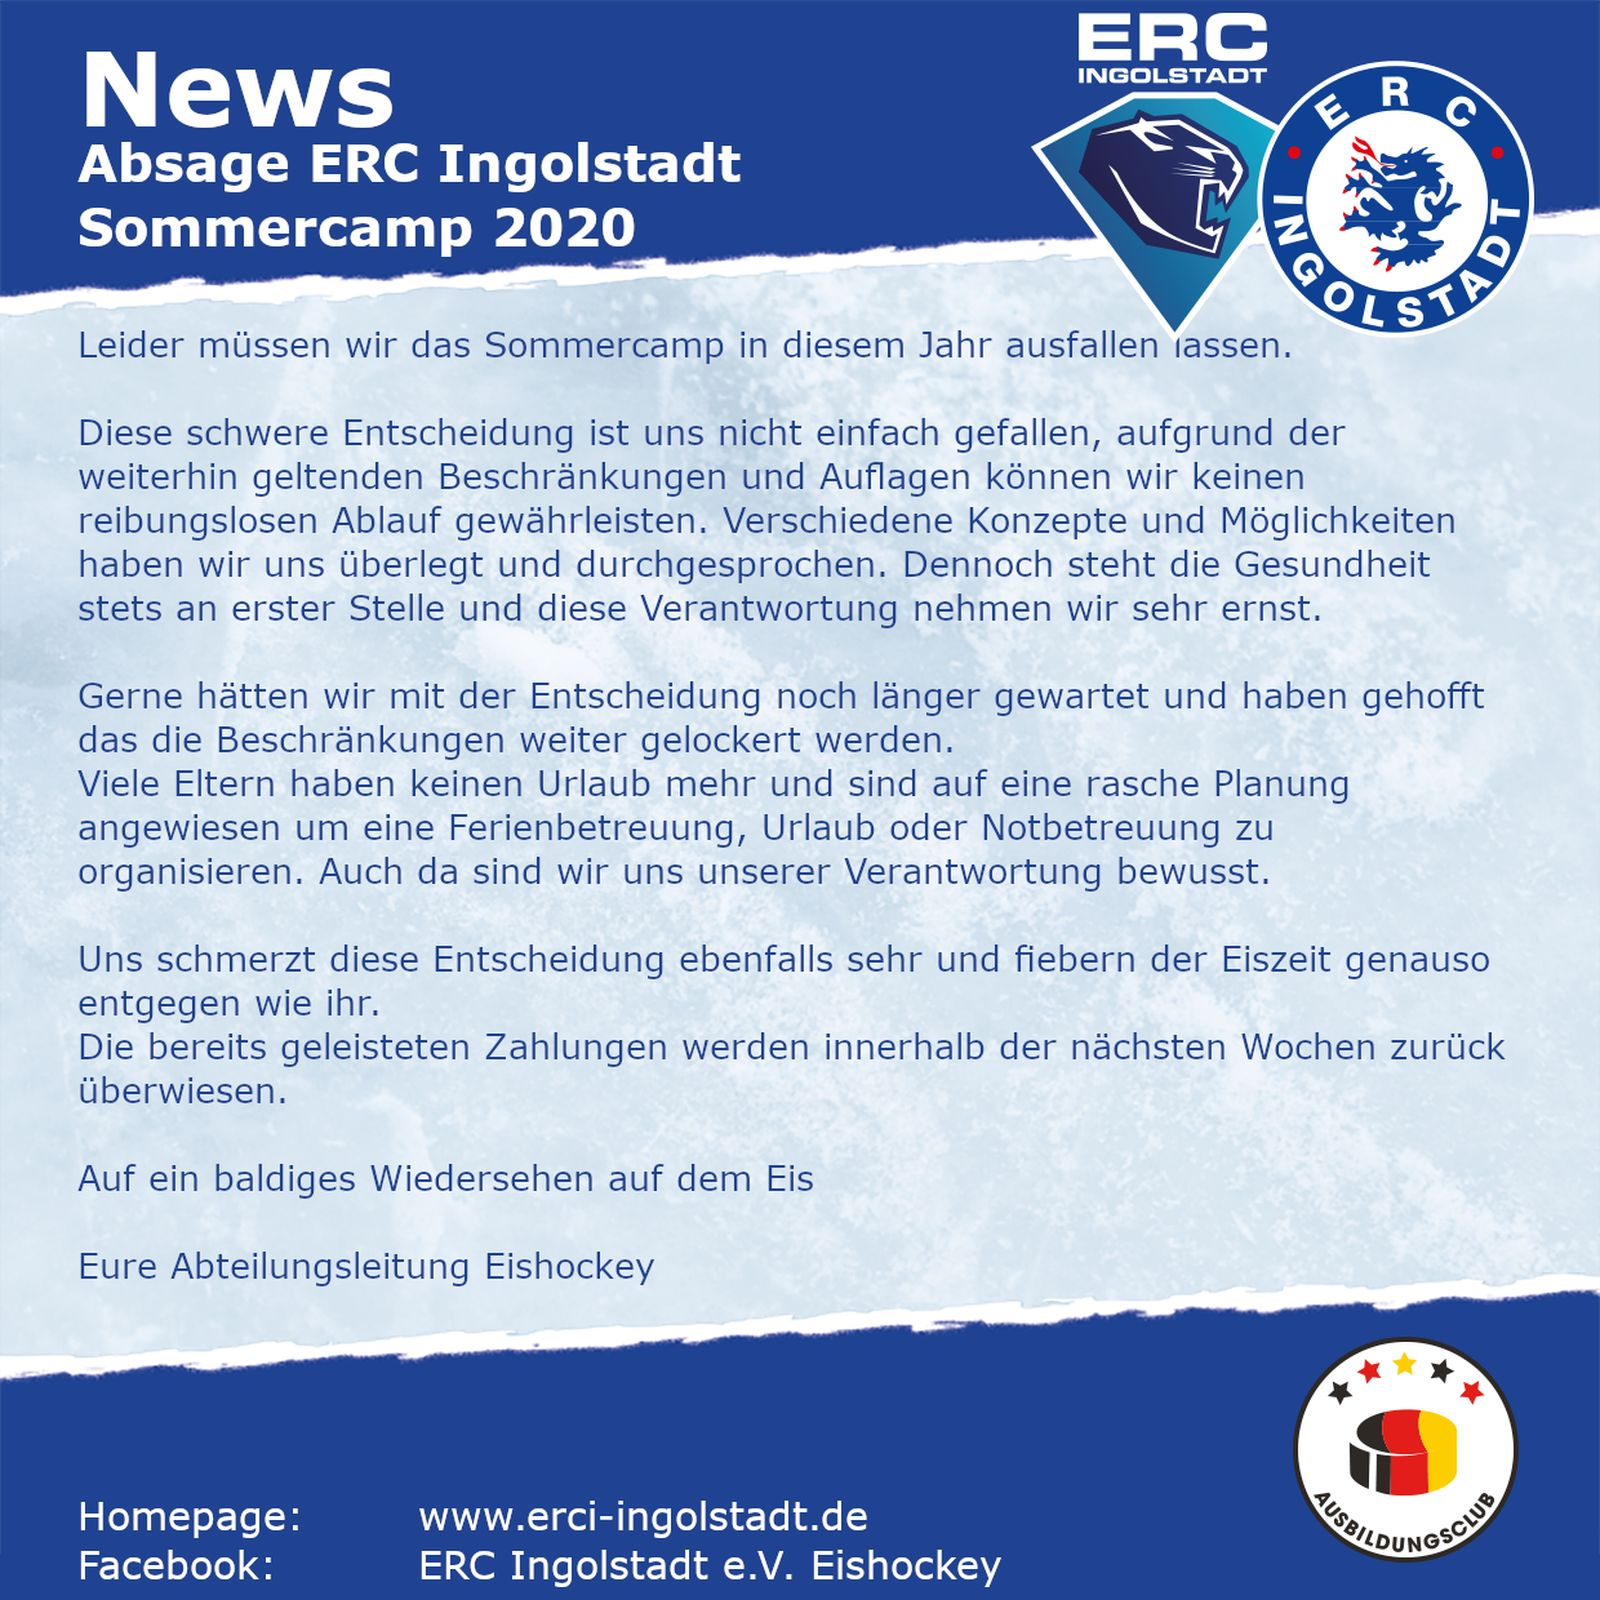 News Absage Sommercamp